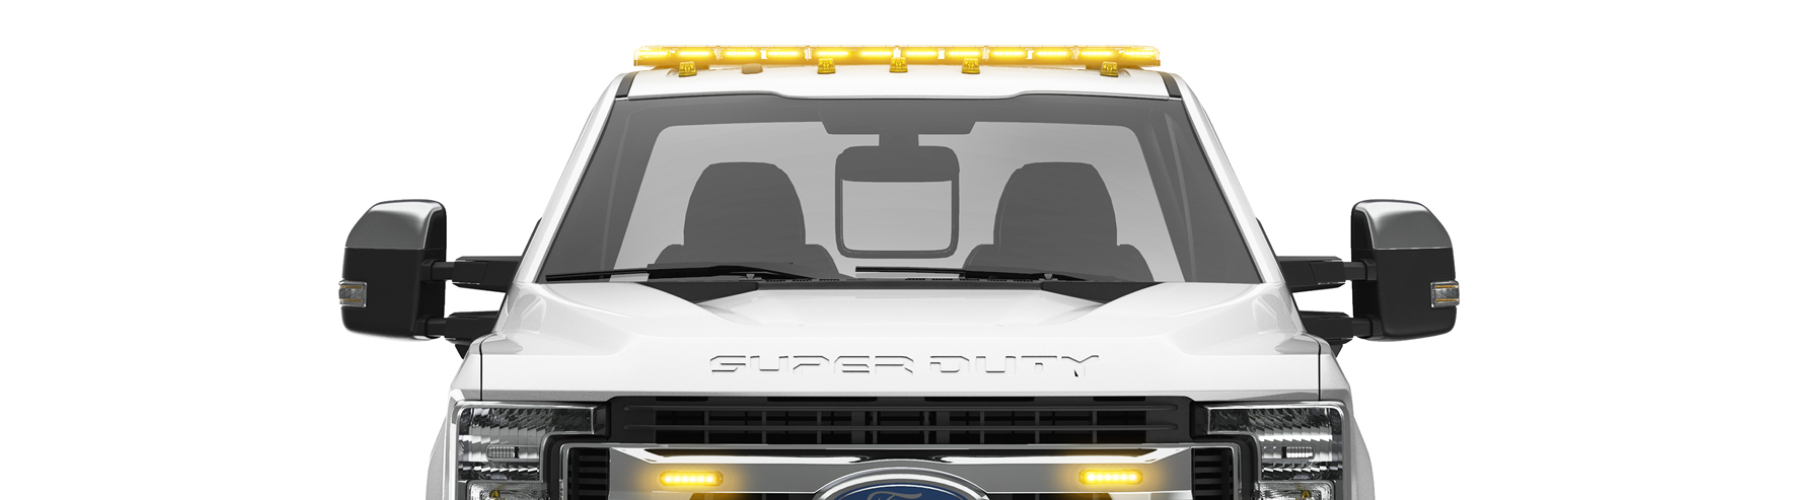 LED warning lights sale LED Light Bars Sale Emergency Vehicle Lights Sale Police Lights Sale